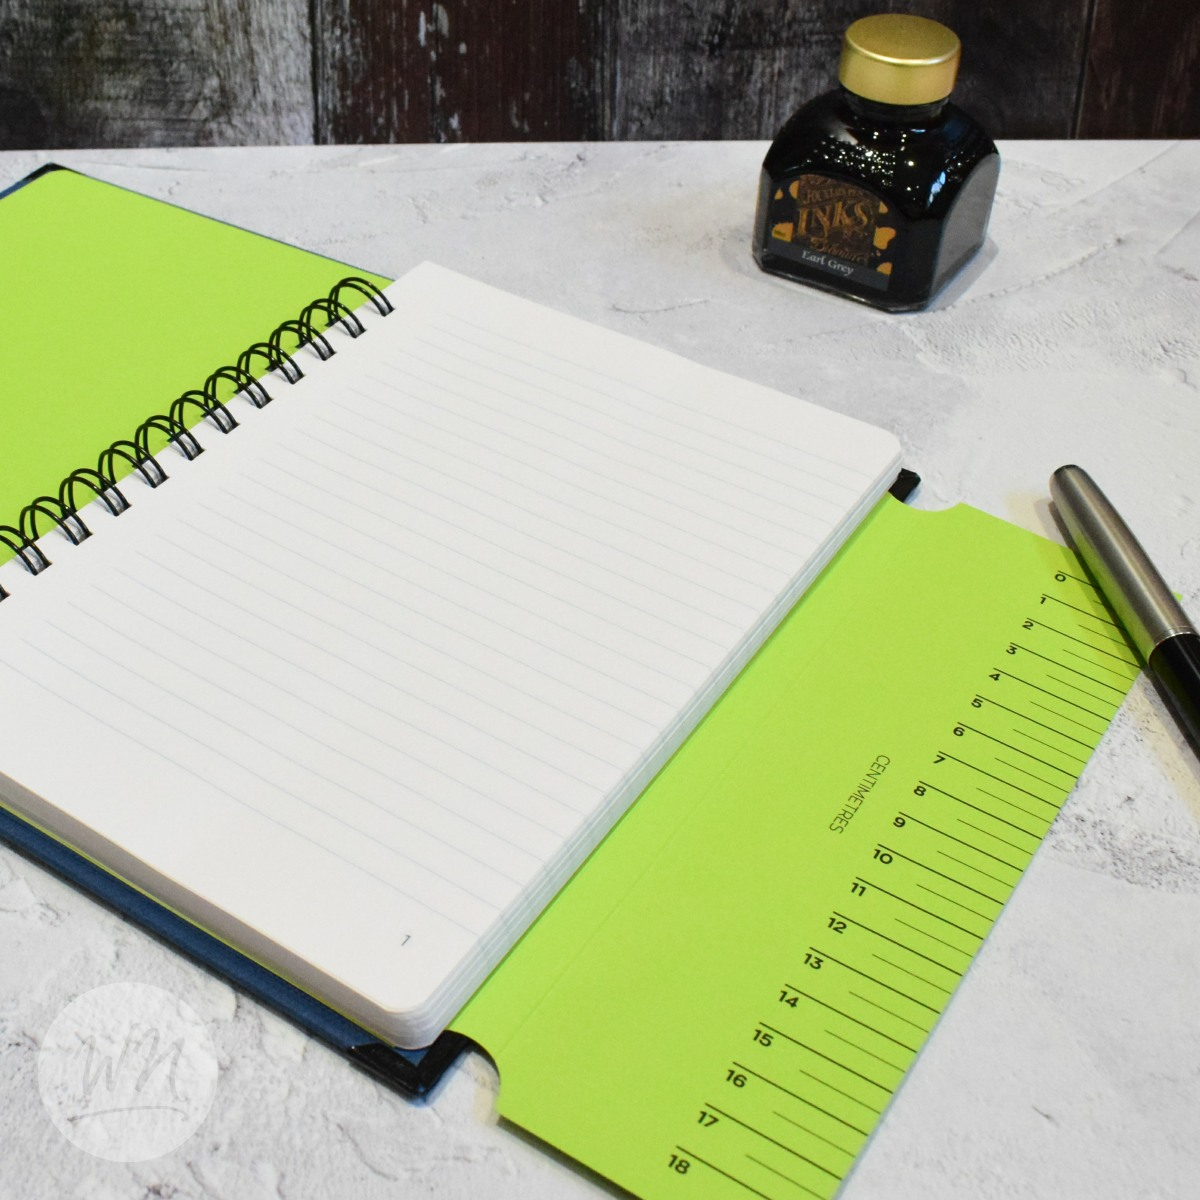 leggero hand made wirebound notebook - ruled, dot grid or plain pages